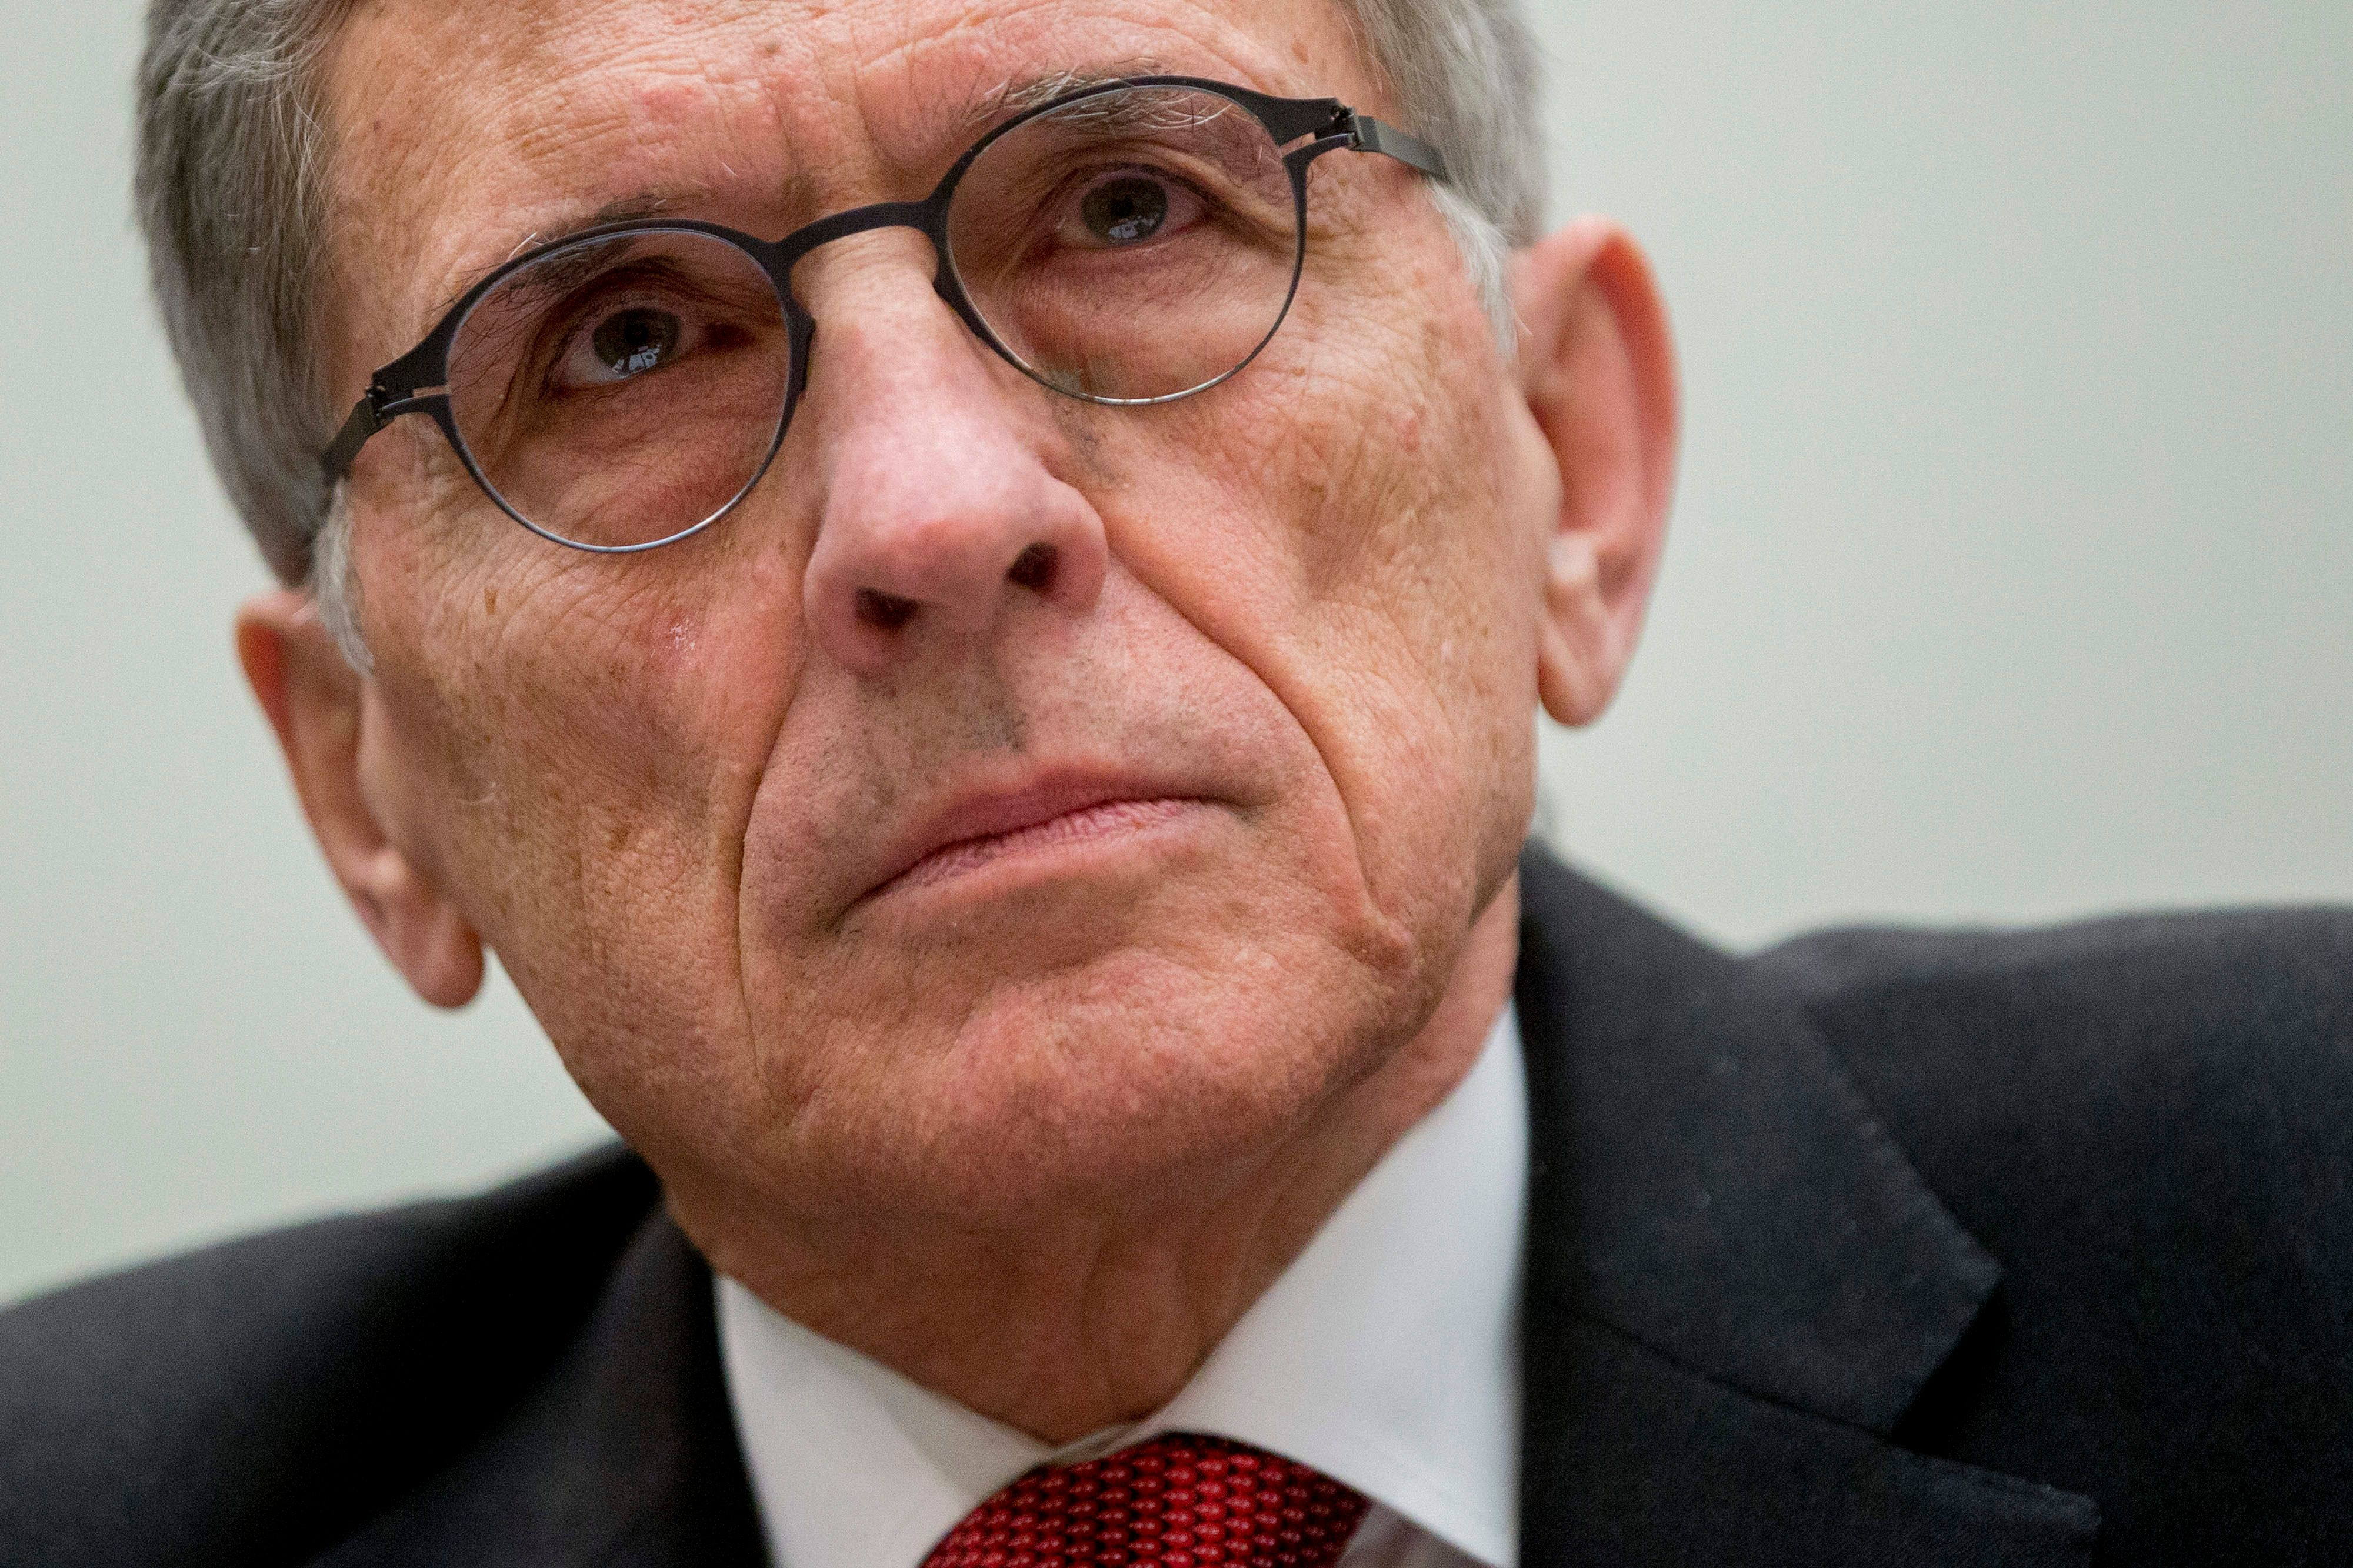 Thomas 'Tom' Wheeler, chairman of the Federal Communications Commission (FCC), listens during a House Judiciary Committee hearing in Washington, D.C., U.S., on Wednesday, March 25, 2015. The Federal Communications Commission was sued by a trade group and a broadband provider this week claiming net neutrality rules issued this year exceed the government's authority. Photographer: Andrew Harrer/Bloomberg via Getty Images